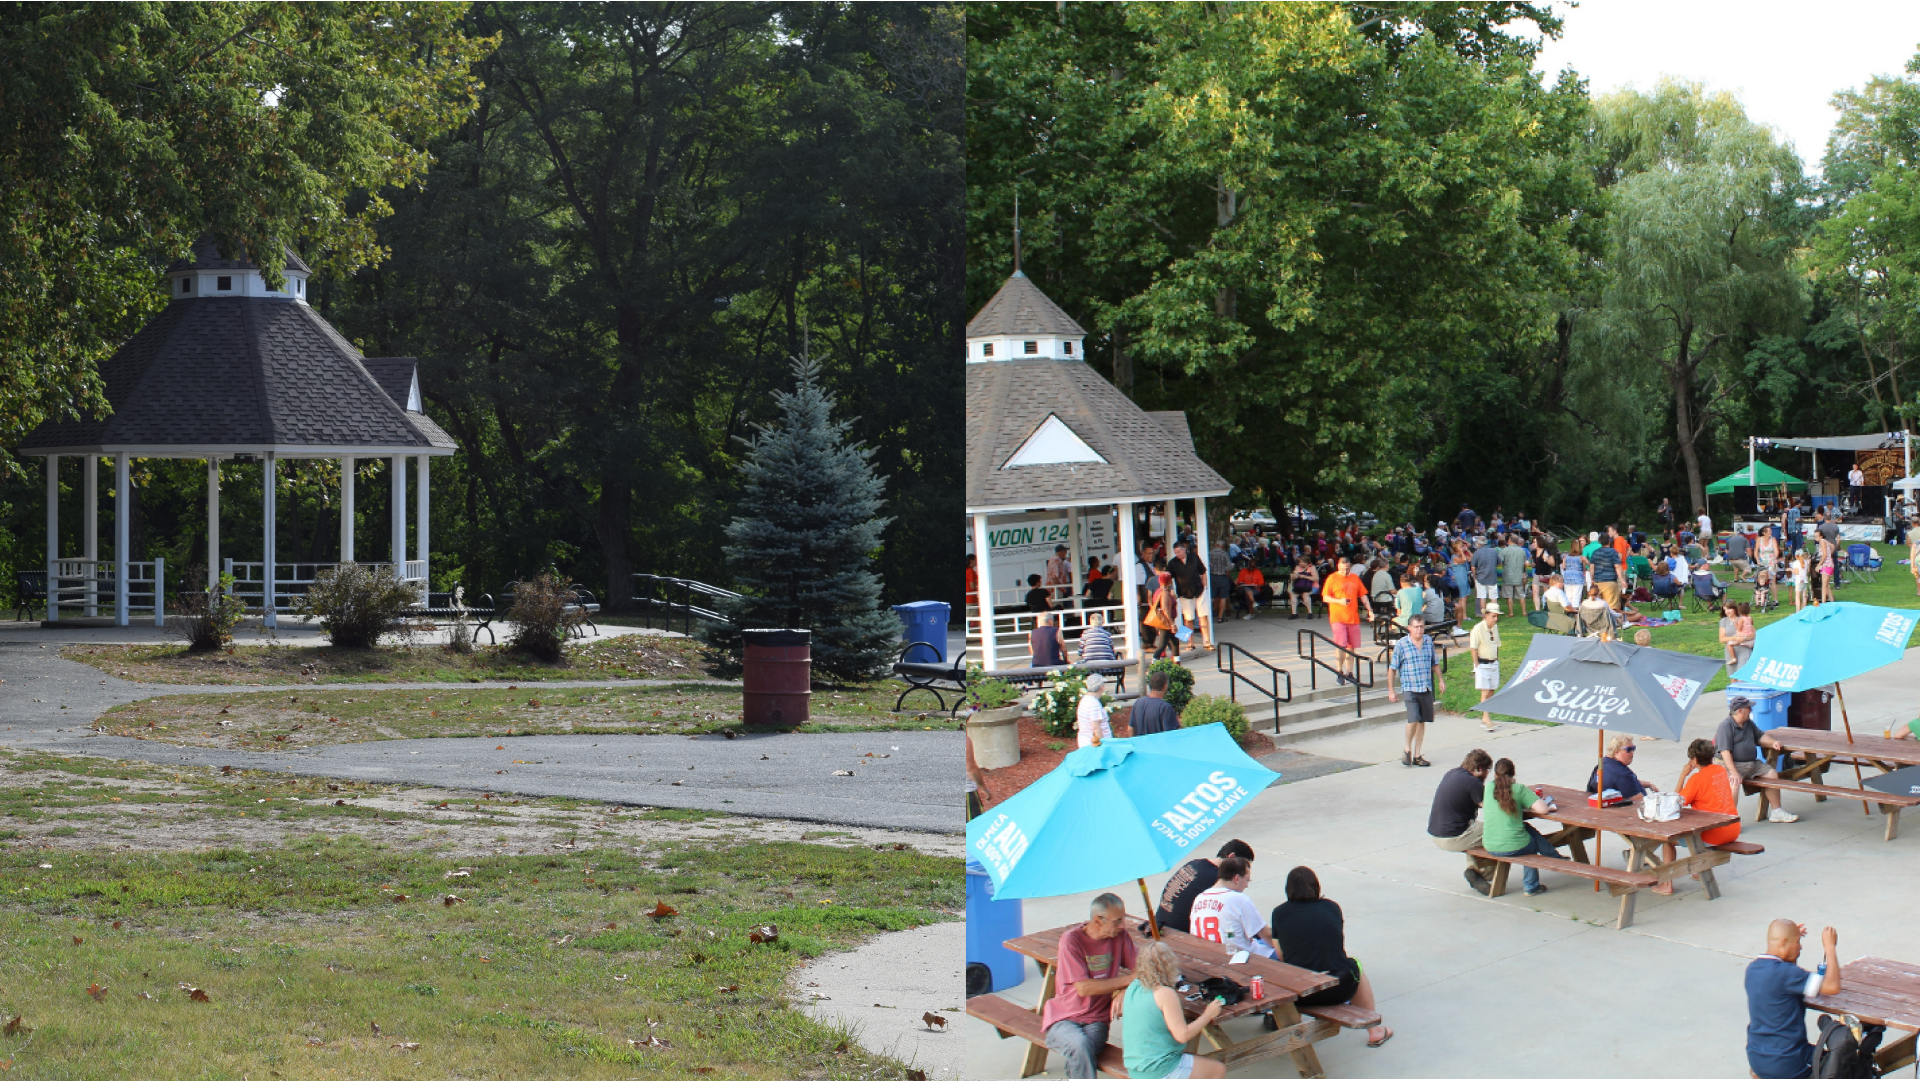 Woonsocket's River Island Art Park before and during the 2018 Levitt AMP Woonsocket Music Series